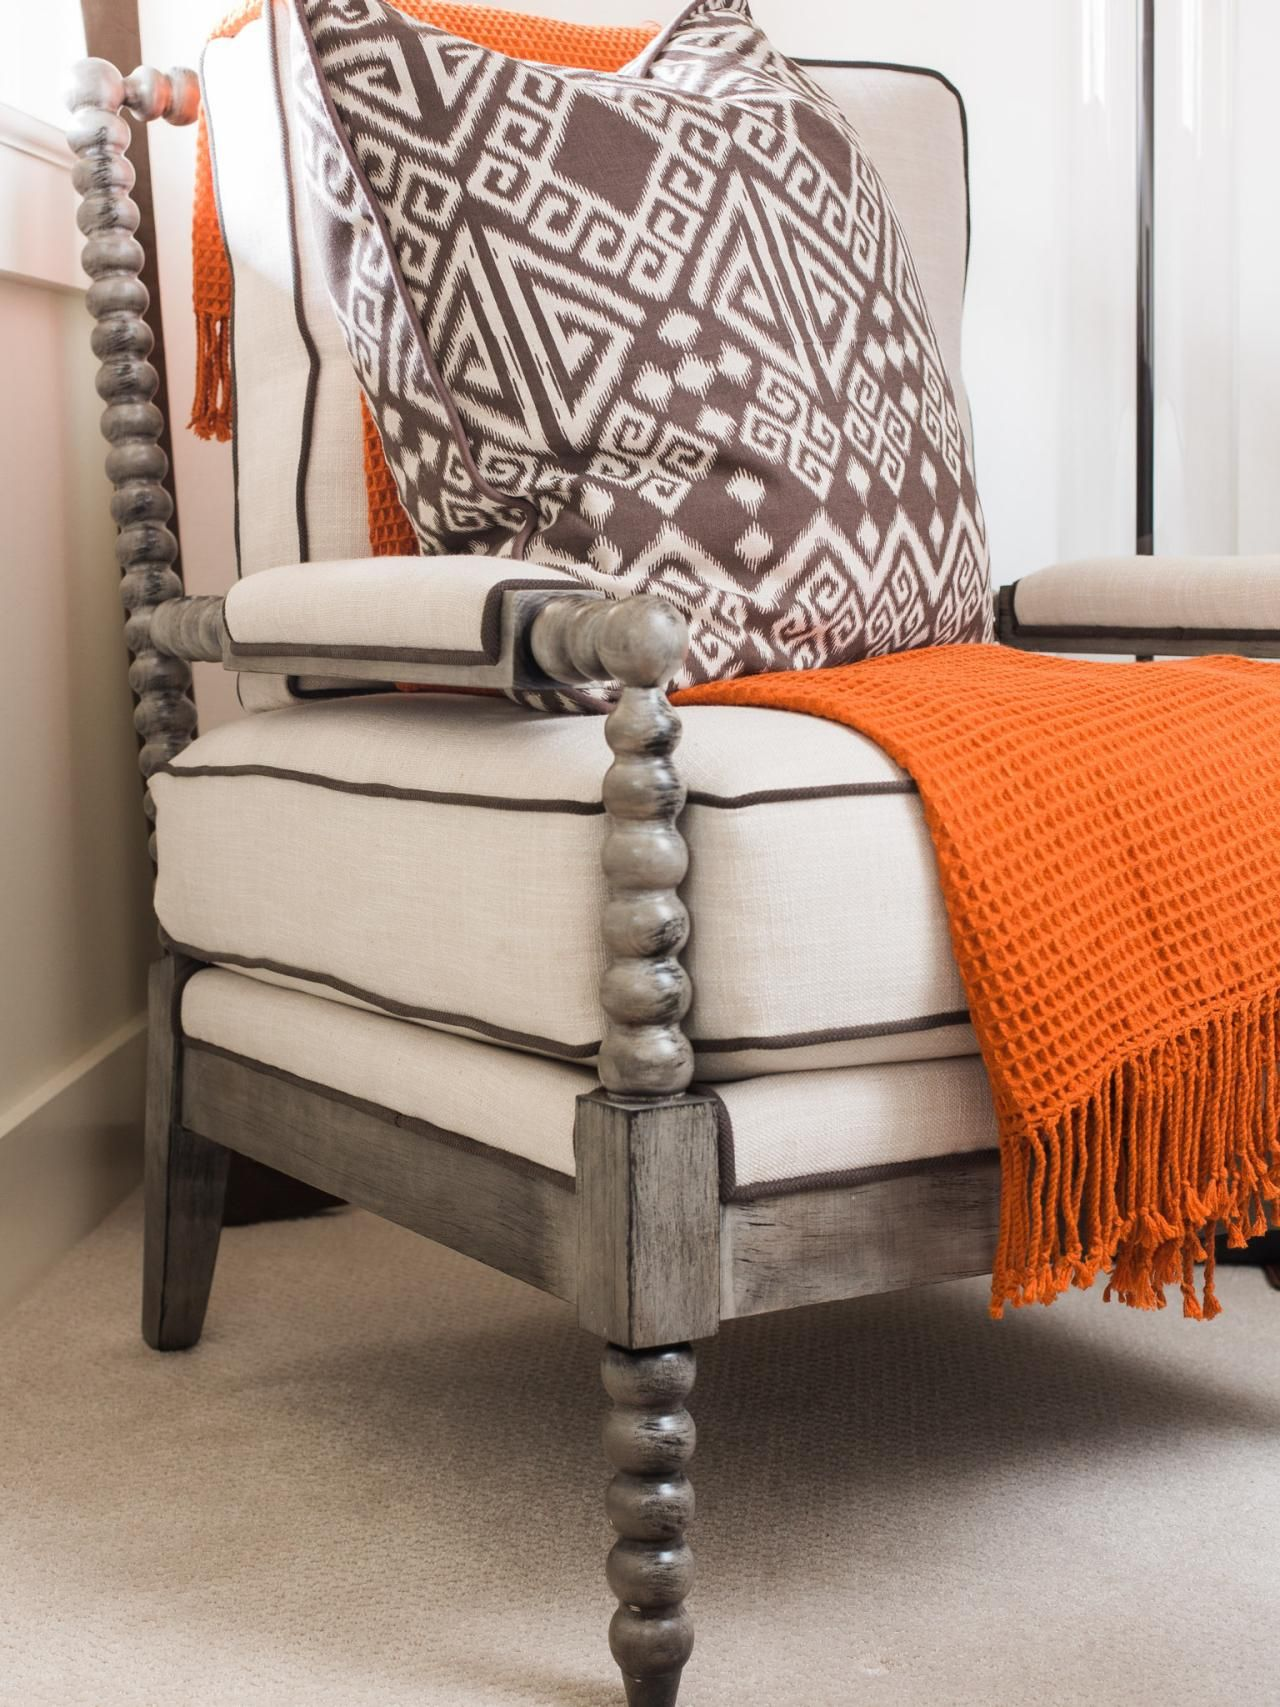 Bedroom Chair Pinterest White Round Table And Chairs Find The Best Of Tiffany Brooks From Hgtv House